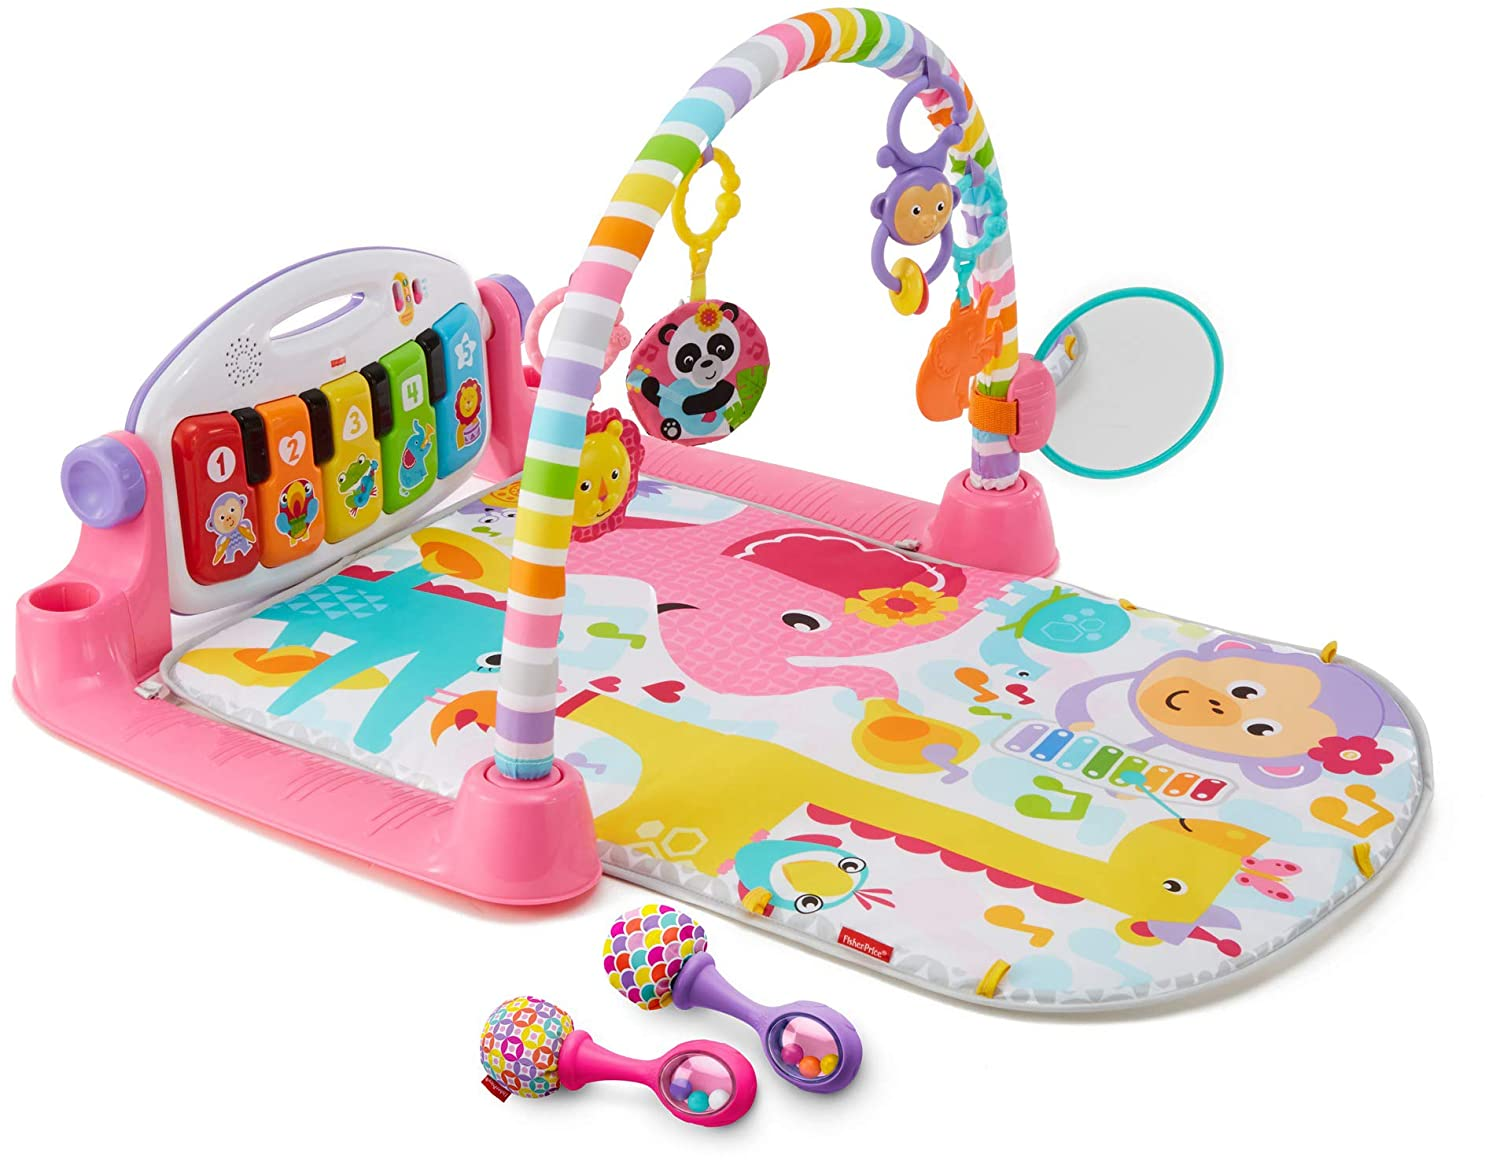 Fisher-Price Deluxe Kick 'n Play Piano Gym, Pink